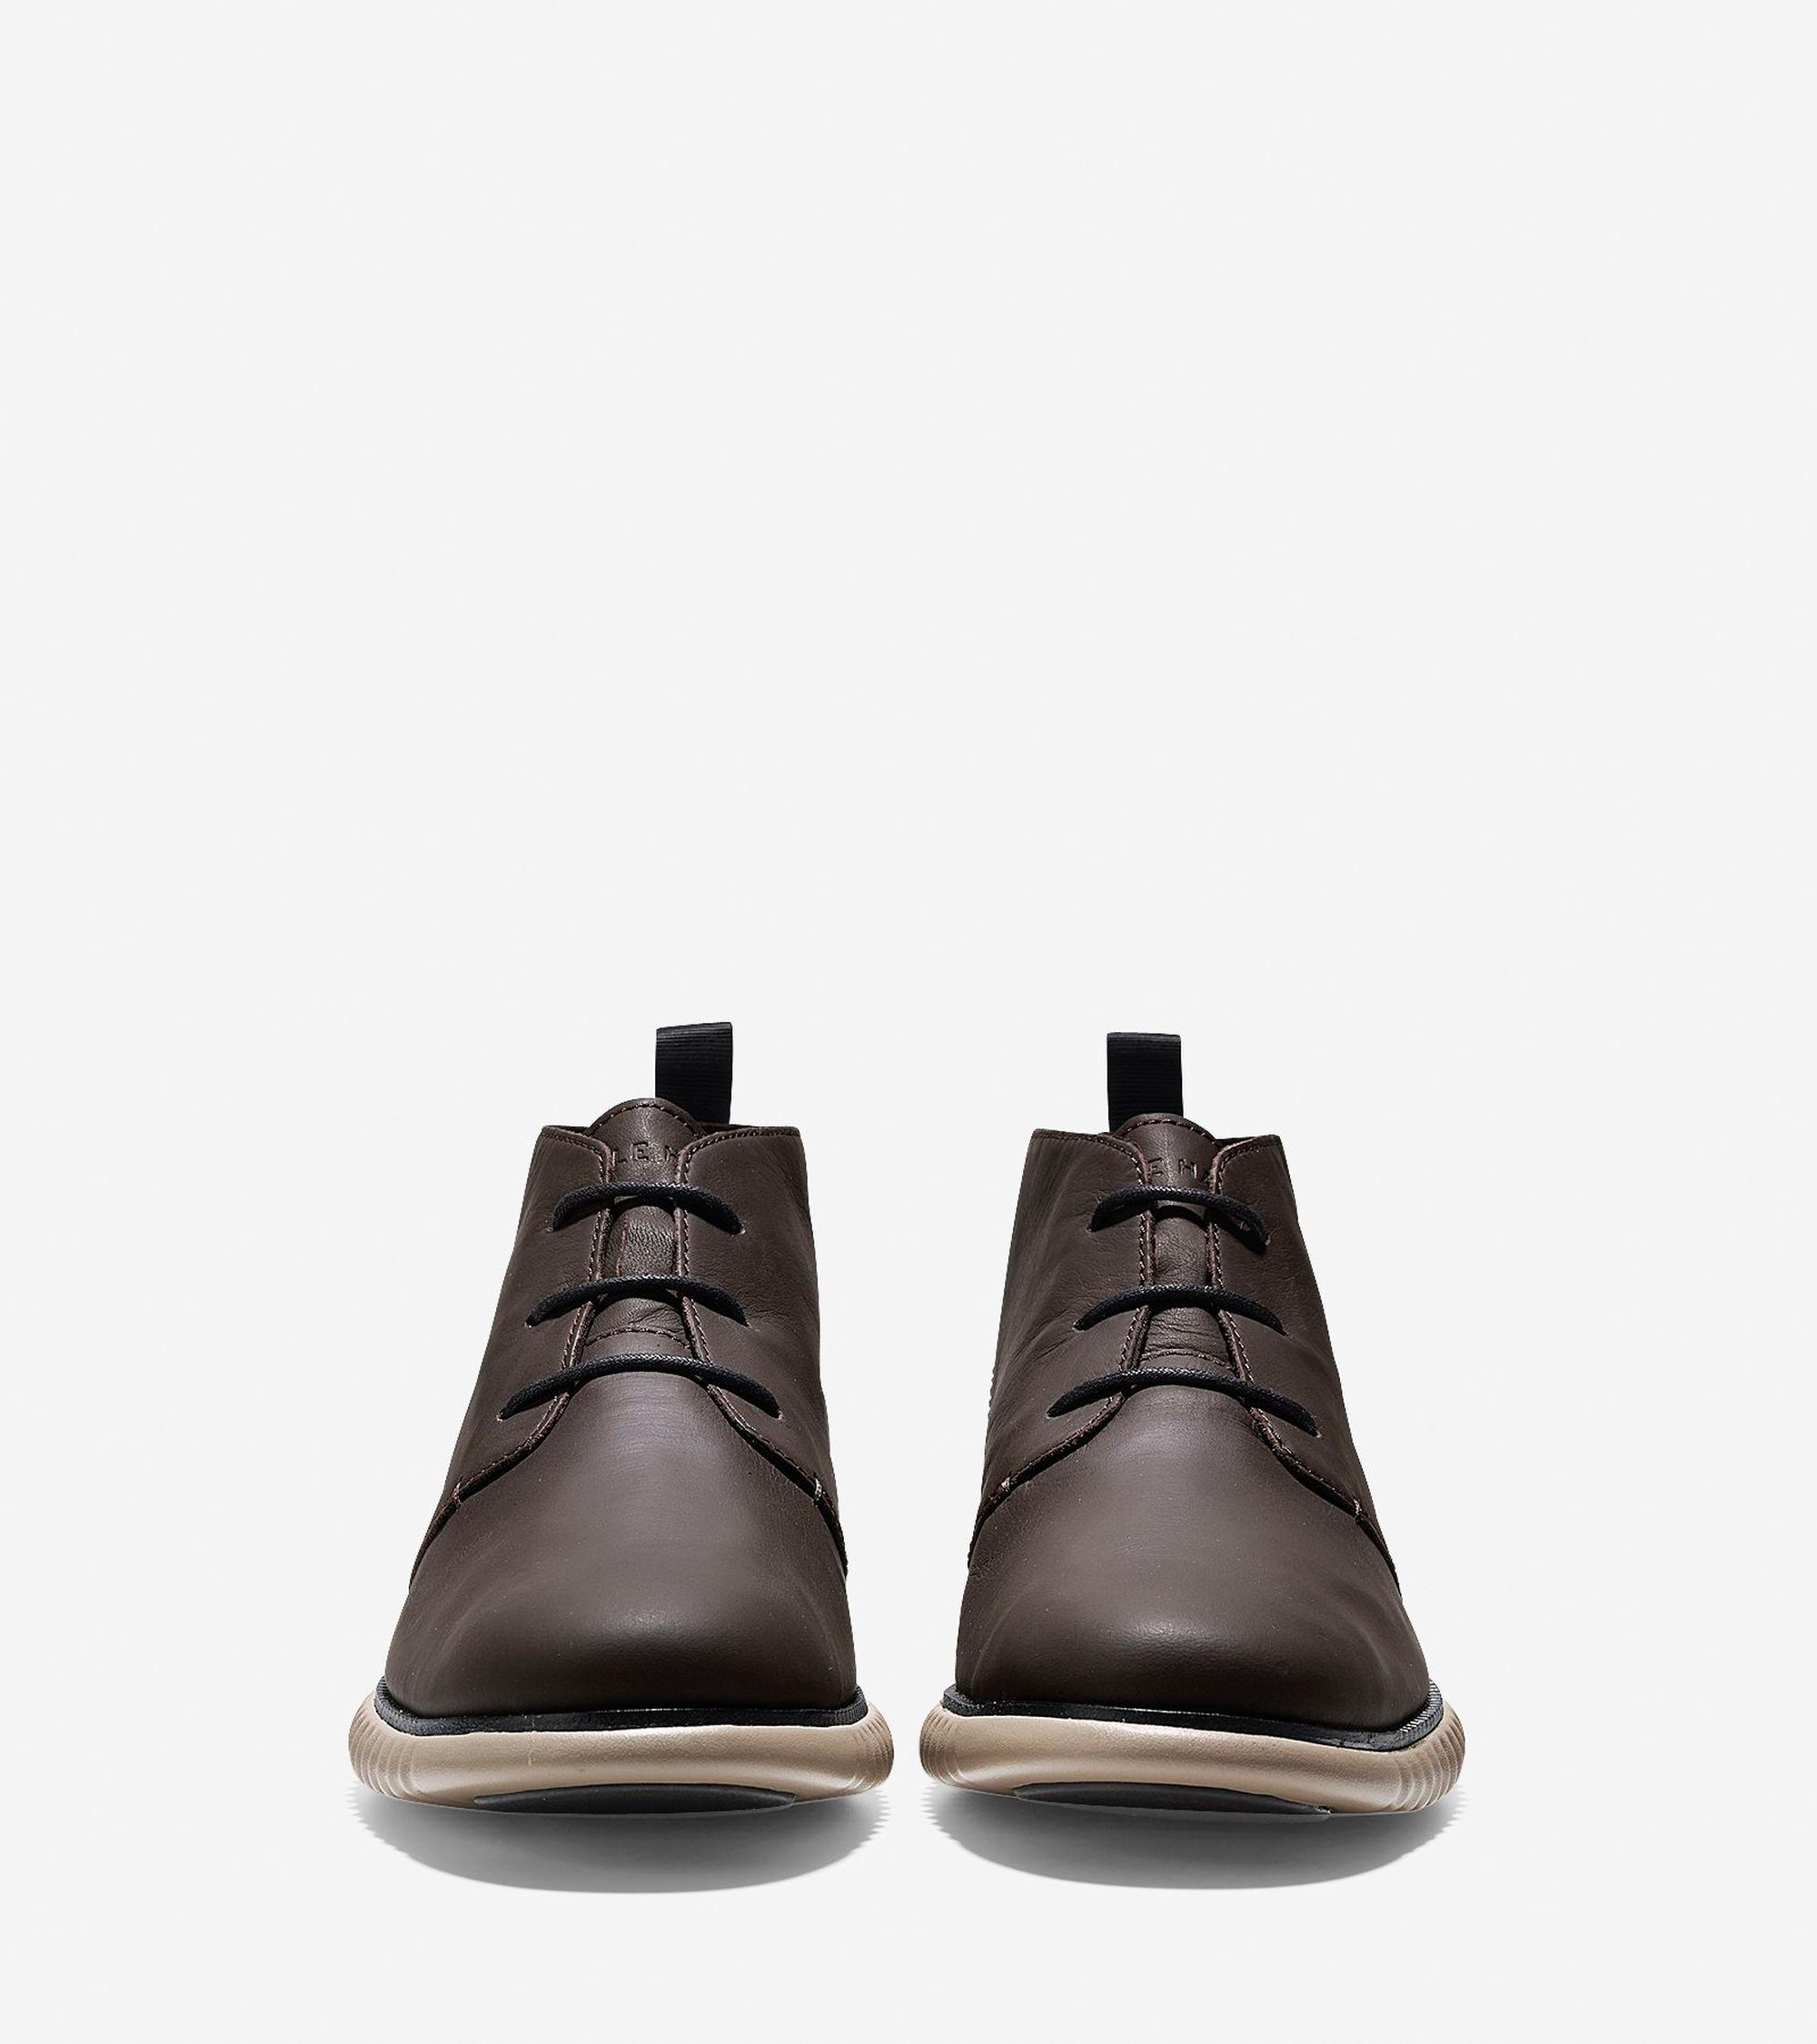 Merrell Brown Suede Perforated Shoes